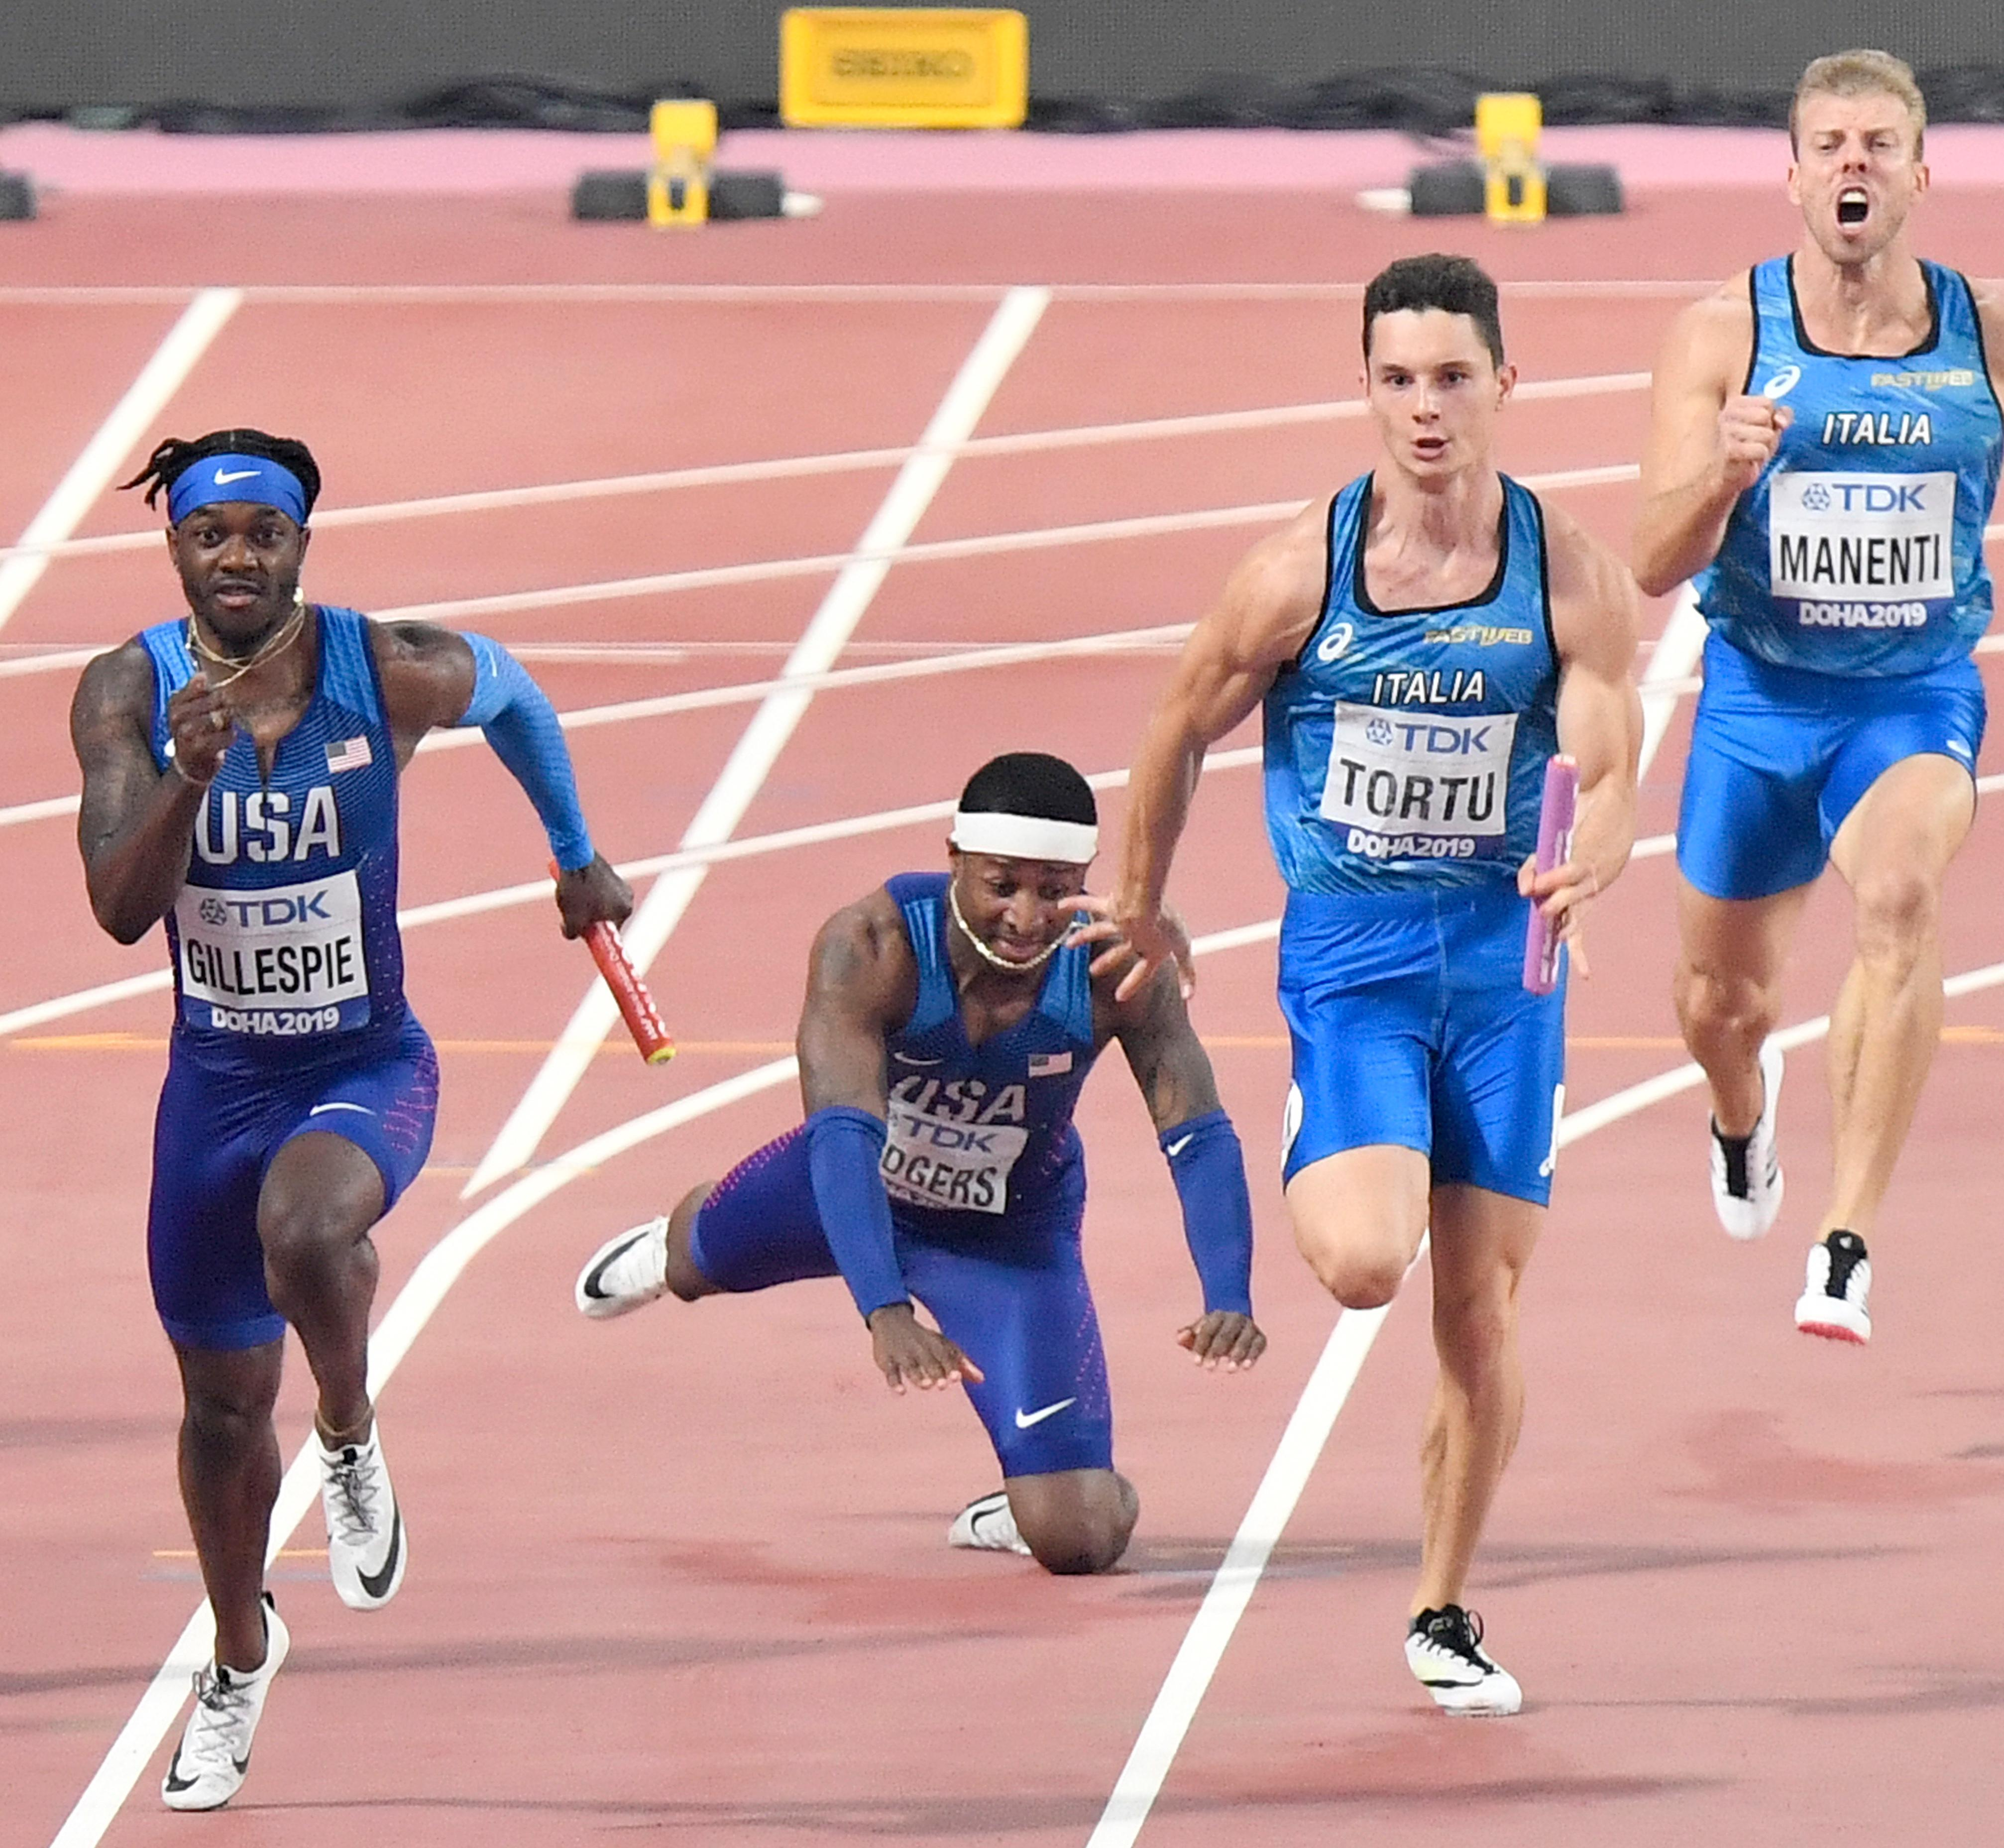 Unites States' Michael Rodgers falls, after relaying with Cravon Gillespie, left, as Italy's Davide Manenti, right screaming, and Filippo Tortu, second right, compete during the men's 400 meter relay at the World Athletics Championships in Doha, Qatar, Friday, Oct. 4, 2019. (AP Photo/Martin Meissner)